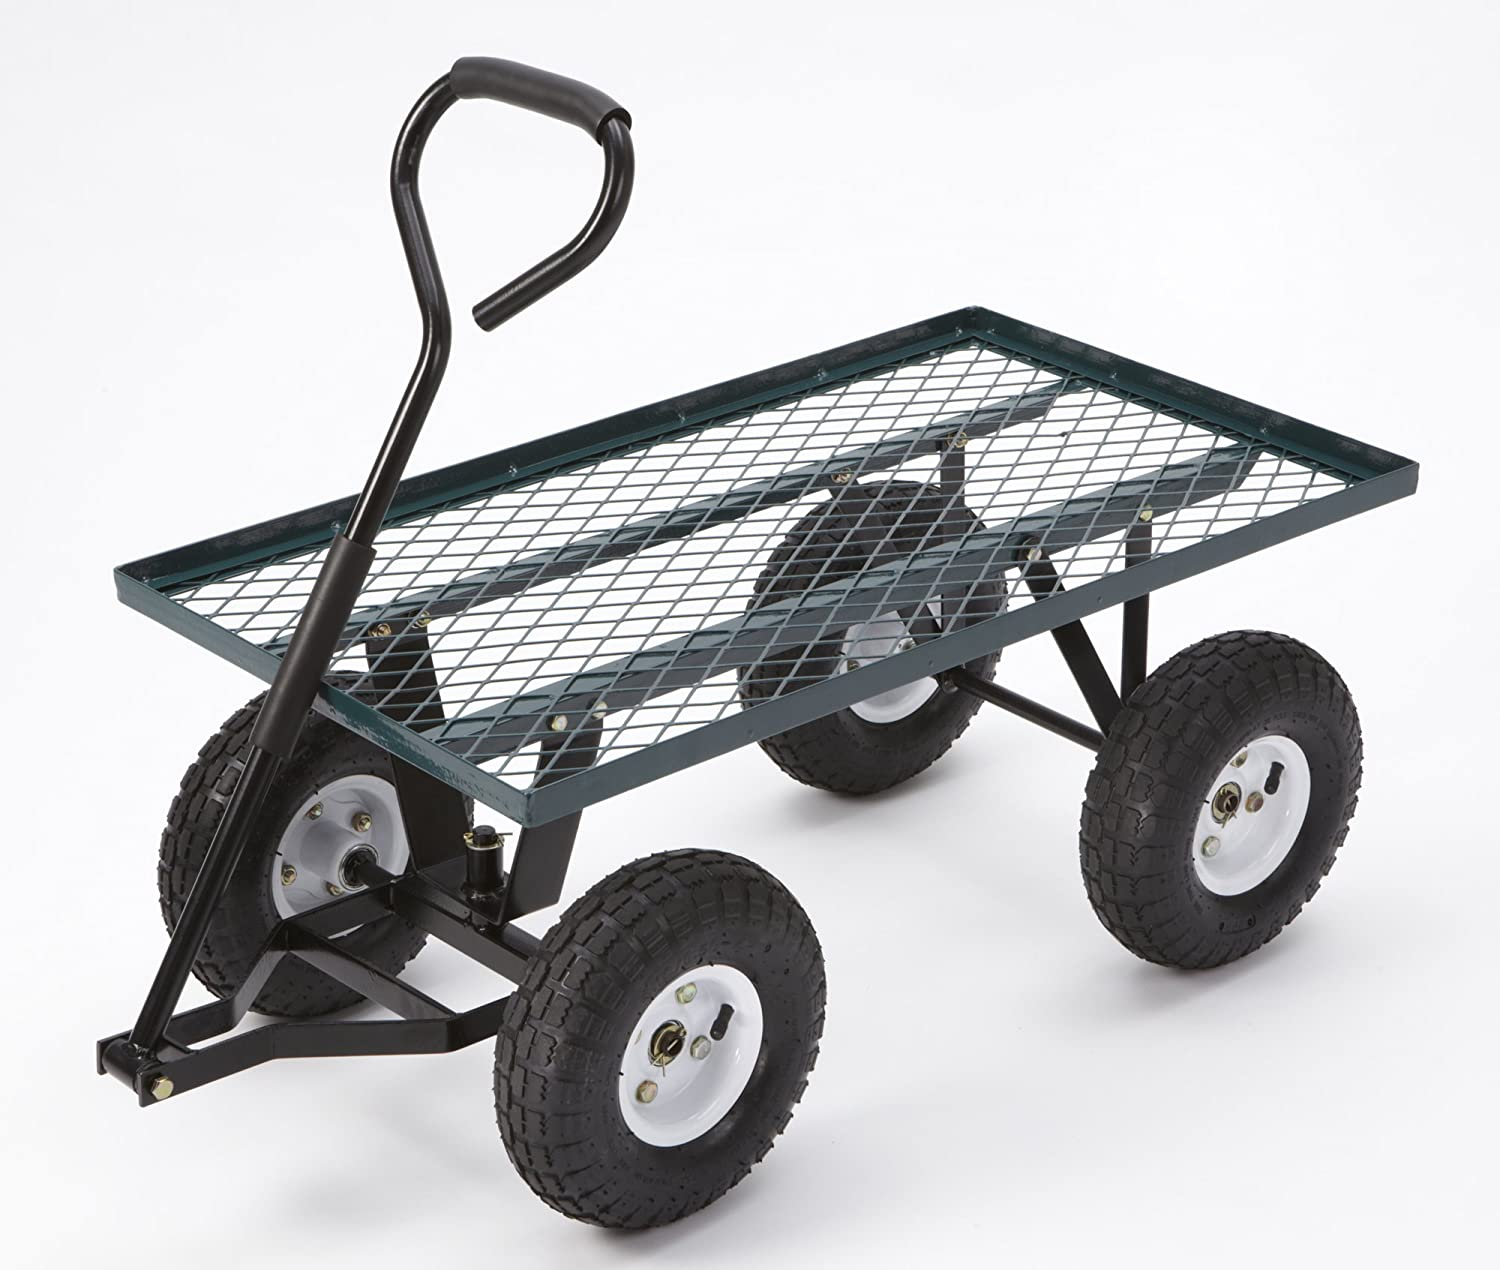 Amazoncom Farm Ranch FR100F Steel Flatbed Utility Cart with